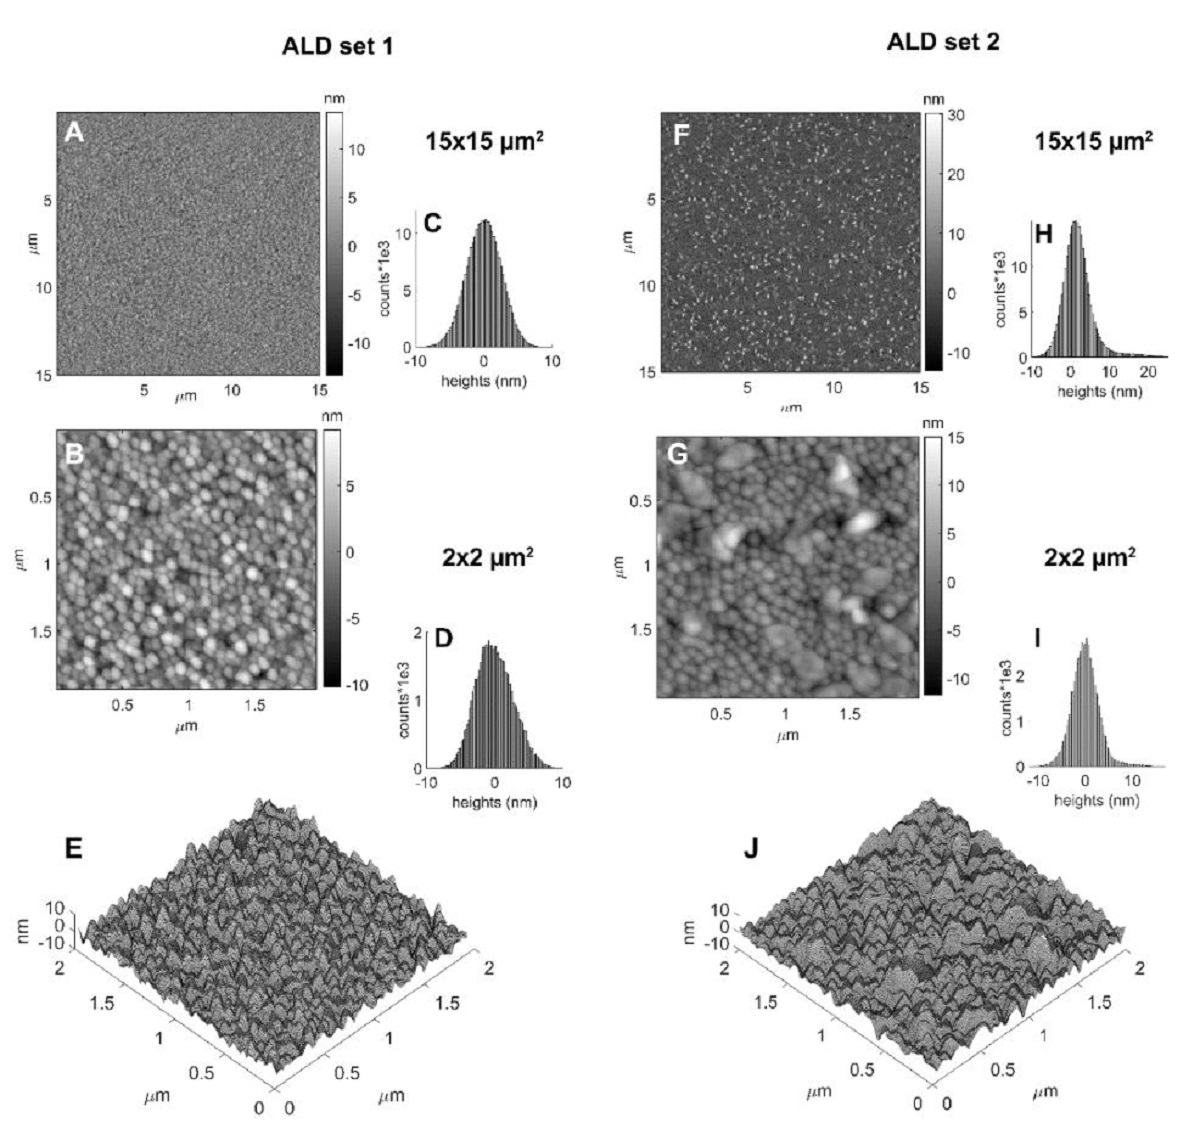 "Supplementary Information S8. showing the Atomic Force Microscopy (AFM)ALD films roughness characterization from «Nucleation in confinement generates long-range repulsion between rough calcite surfaces"" by Joanna Dziadkowiec et al.:  Figure S7 show the AFM height maps (A, B, E, F, G, J) and histograms of surface heights (C, D, H, I) of the initial set 1 (A-E) and set 2 (F-J) ALD calcite surfaces for two scan sizes of 15x15 μm2(A, C, F, H)and 2x2 μm2(B, D, E, G, I, J). The images E and J show 3D height maps of the B, G height maps, respectively"